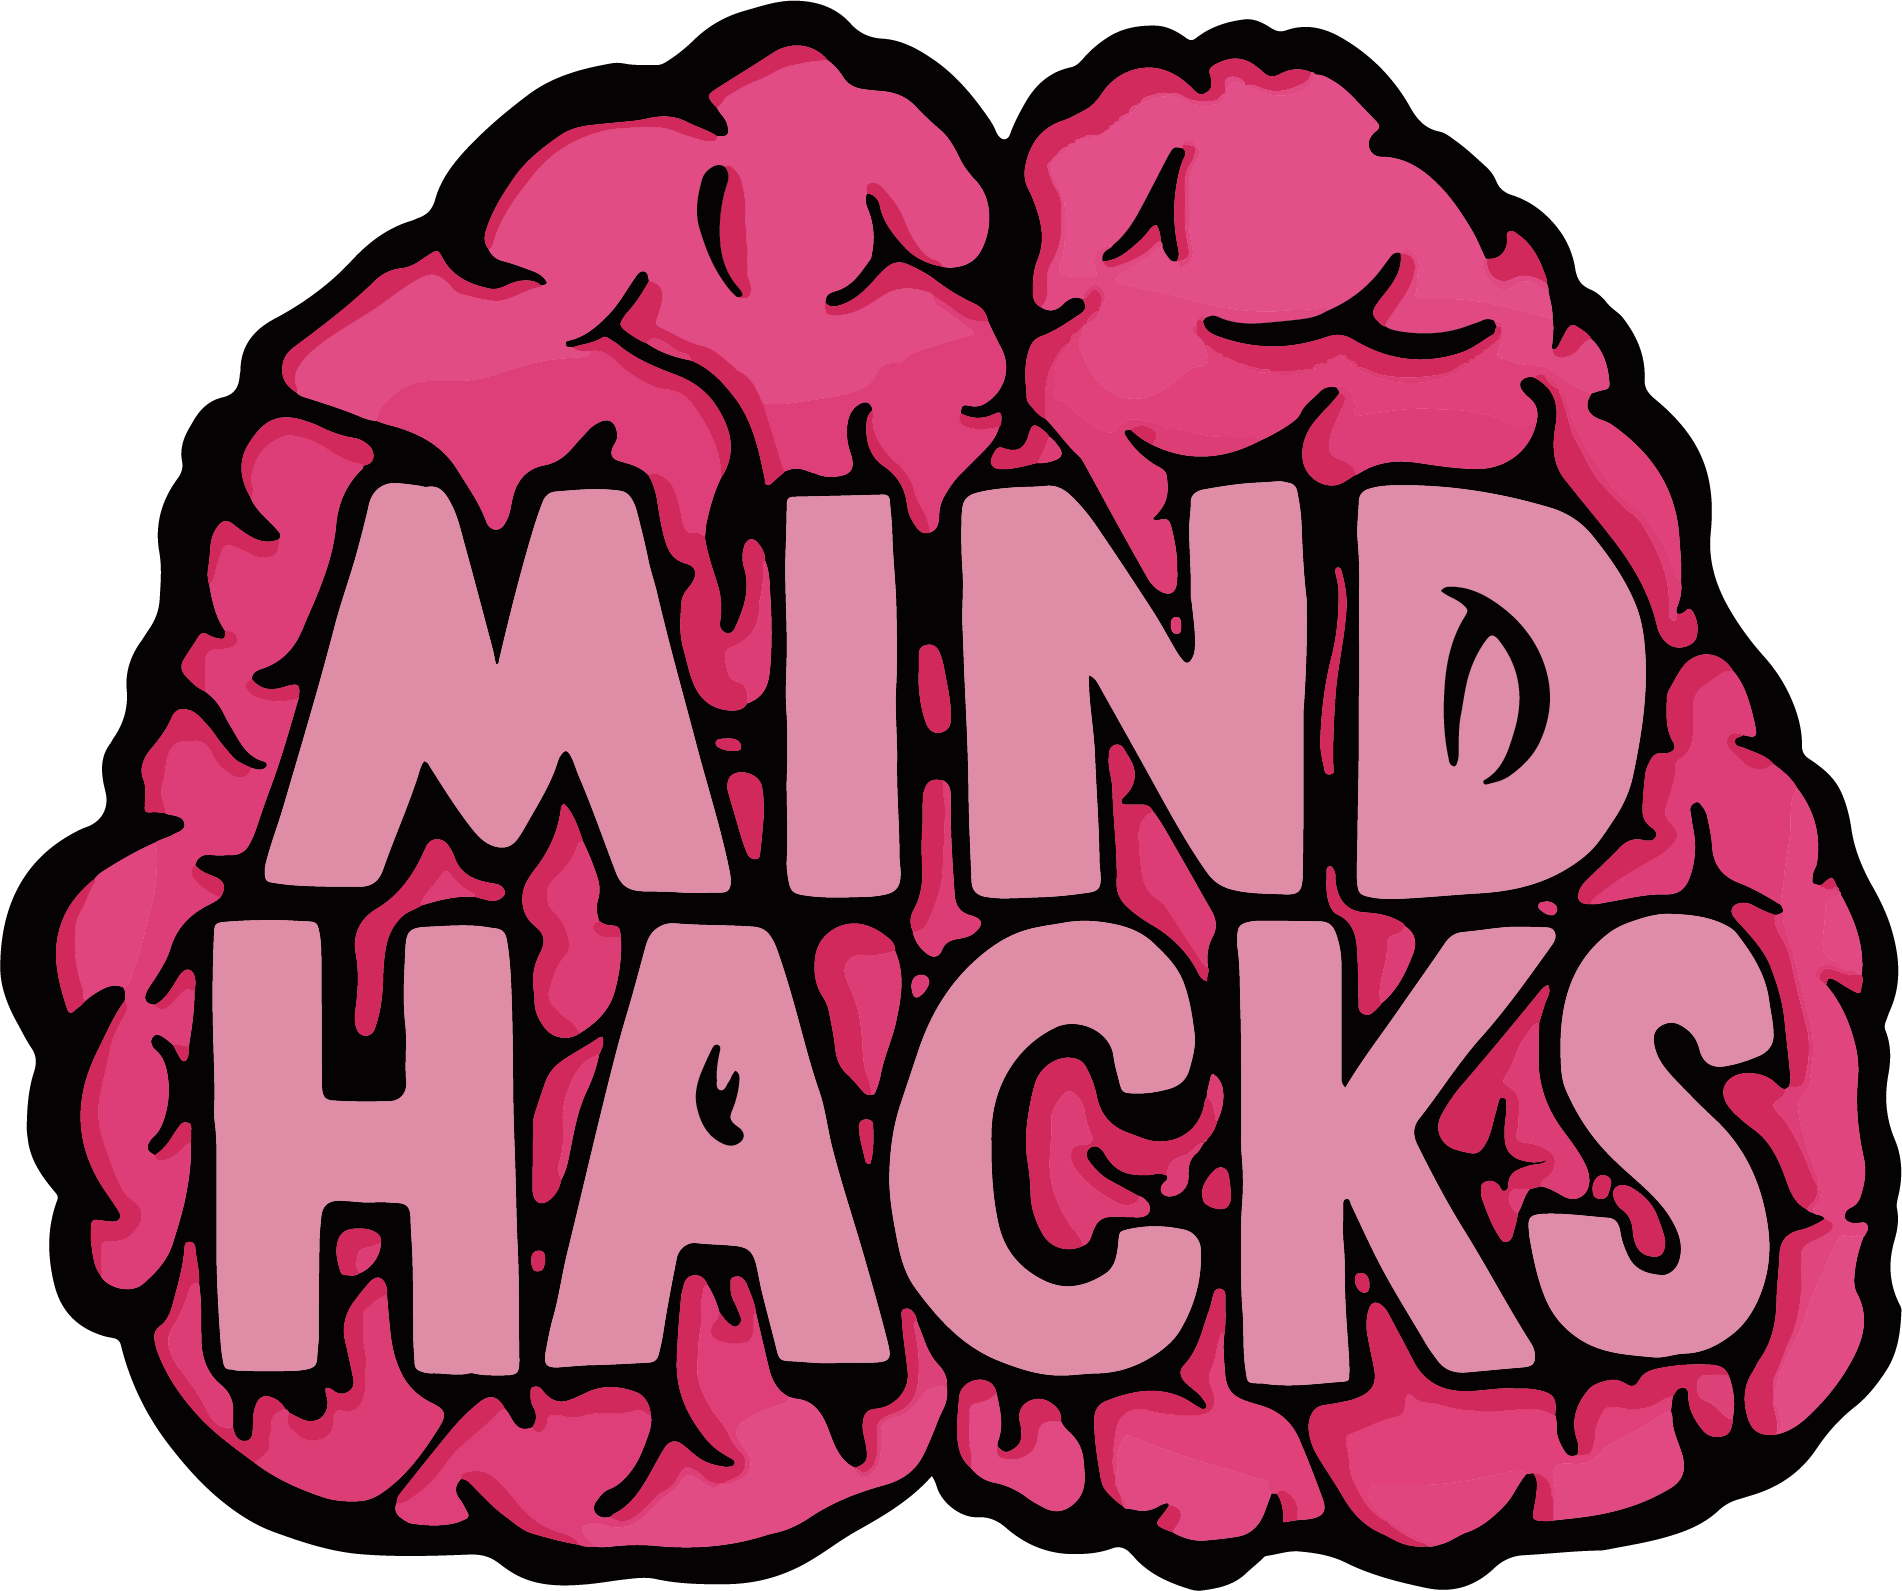 Mind Hacks icons (a pink brain with Mind Hacks written on it)